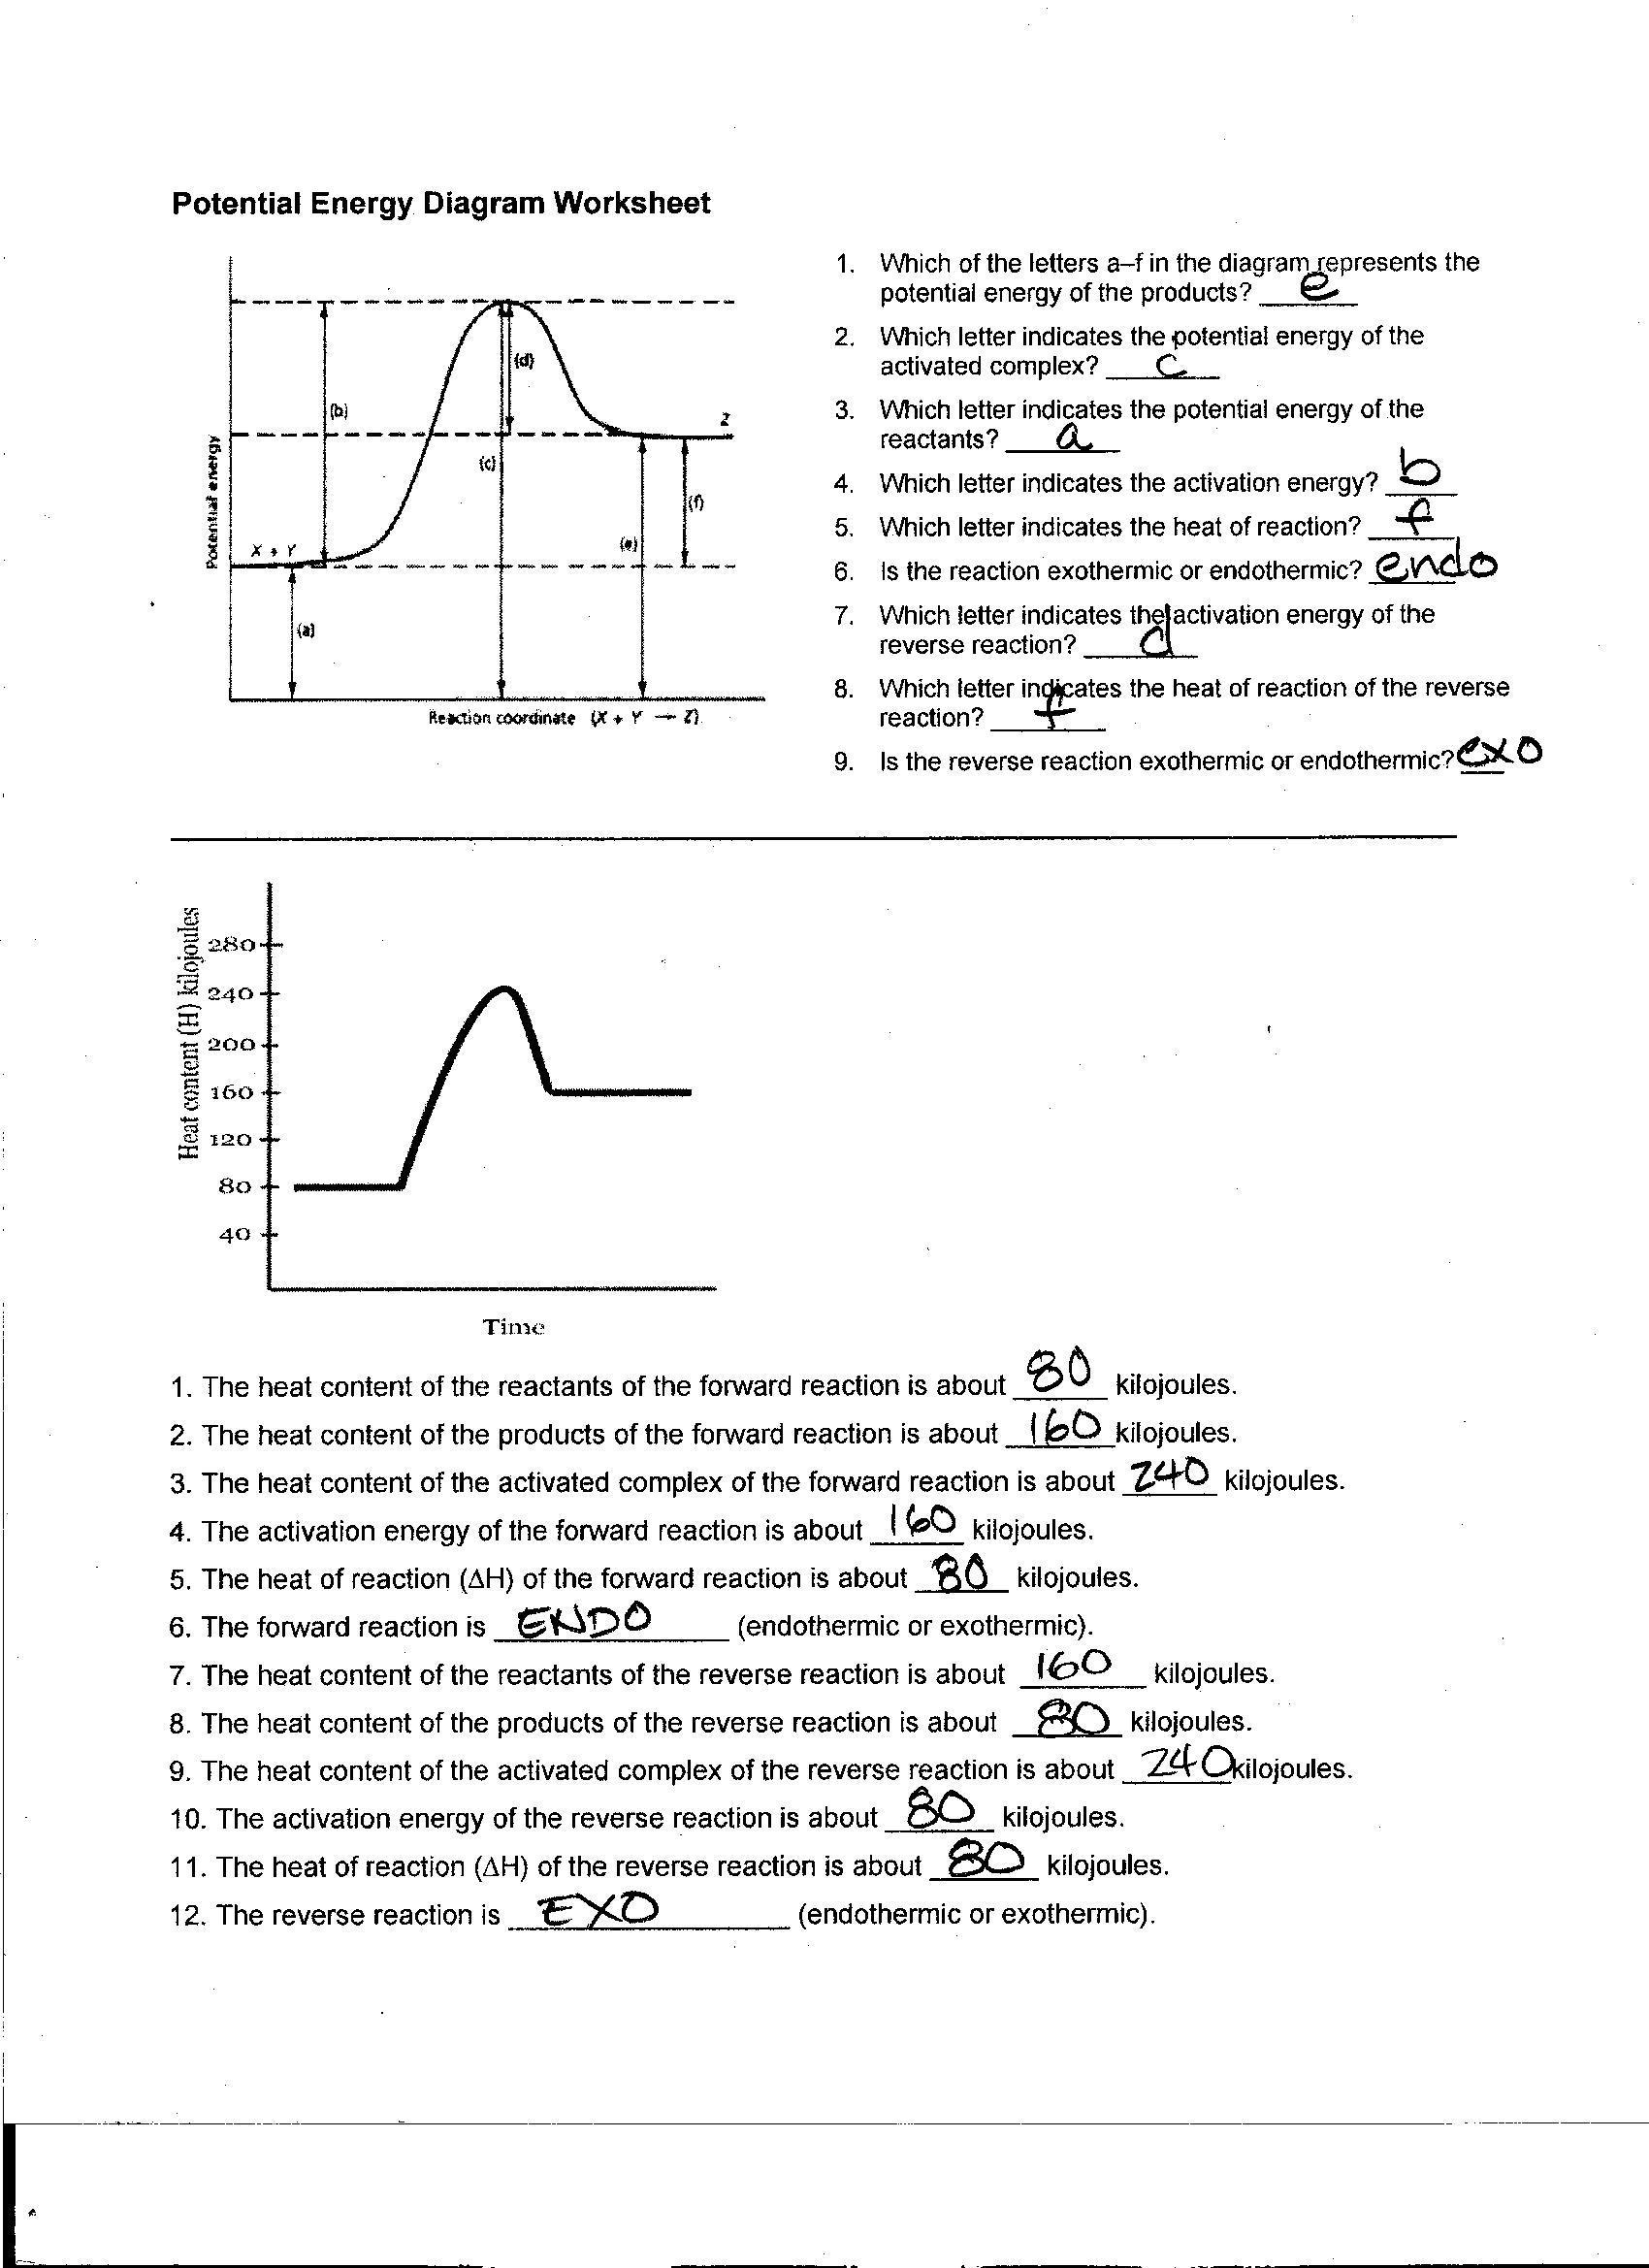 Chemistry 12 Worksheet 1 2 Potential Energy Diagrams